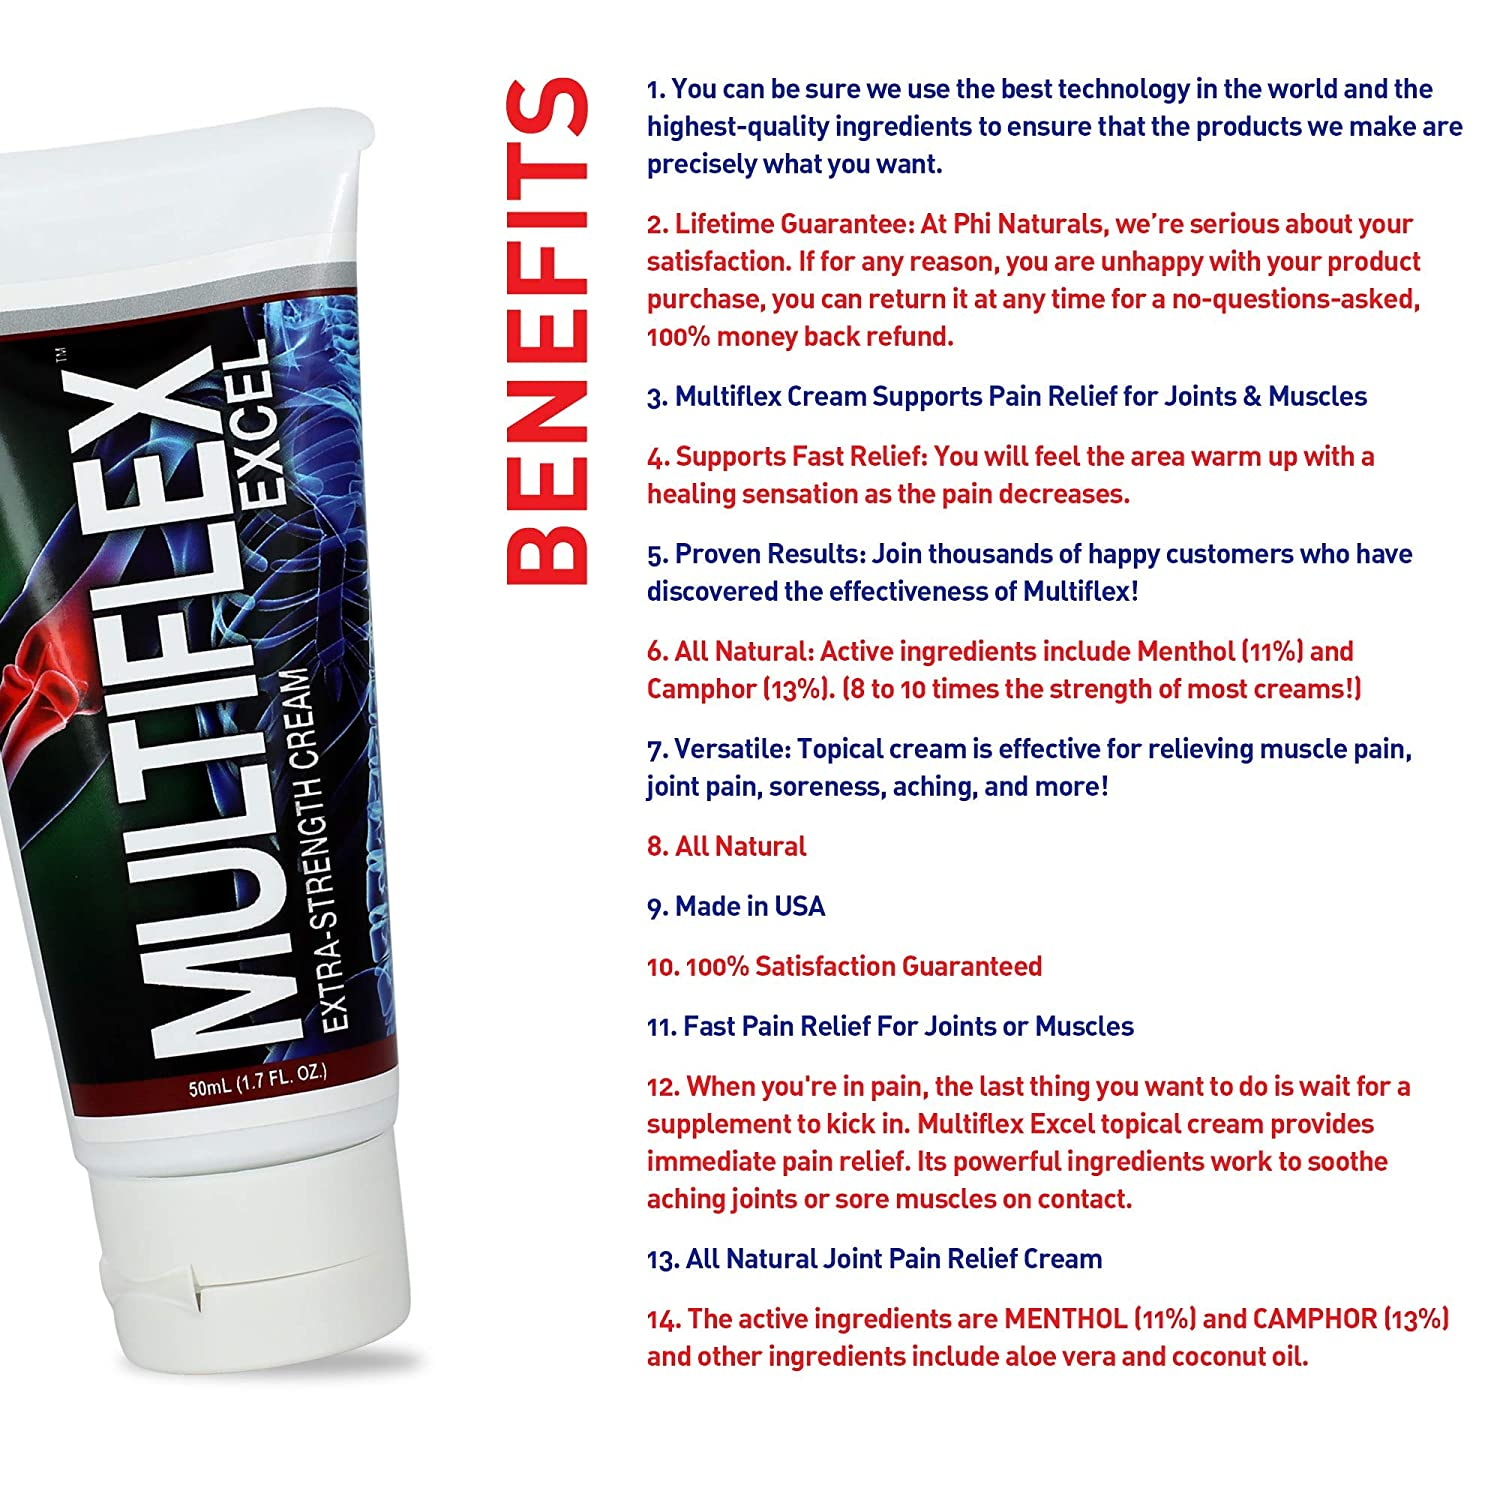 Alezan (joint cream): horse ointment is effective 53